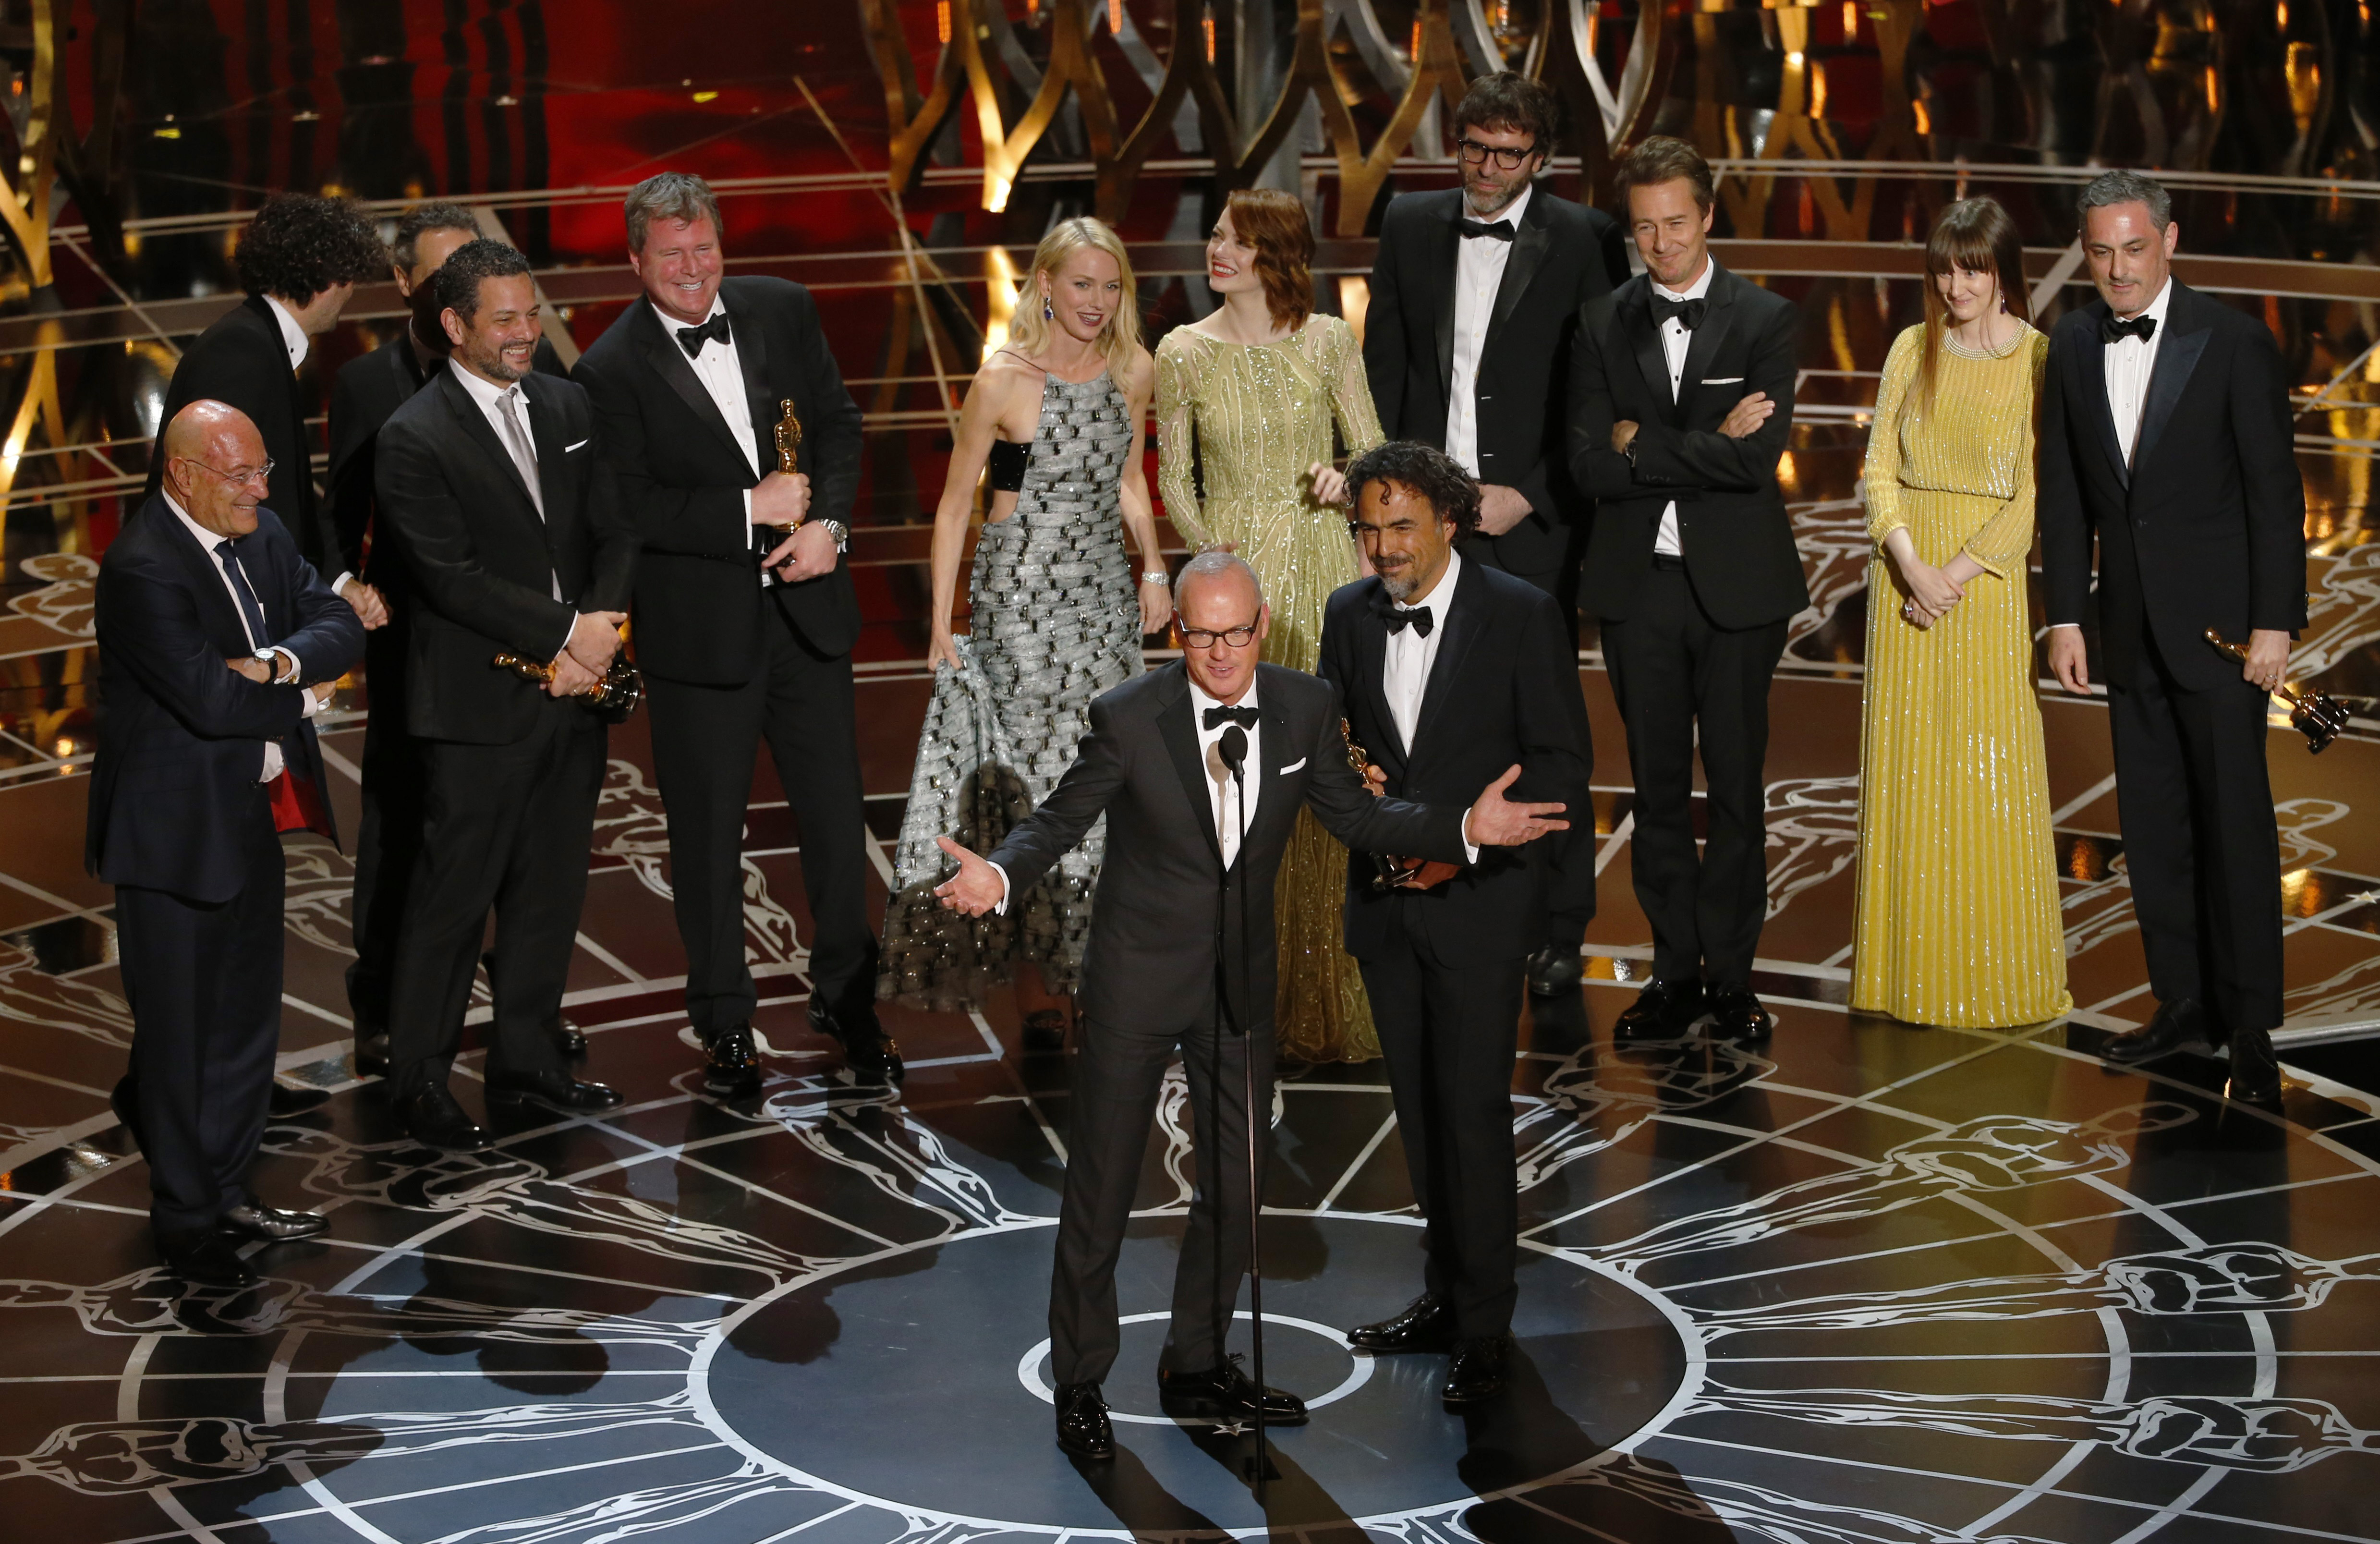 """Actor Keaton and director Inarritu accept the Oscar for best picture for his film """"Birdman""""during the 87th Academy Awards in Hollywood"""